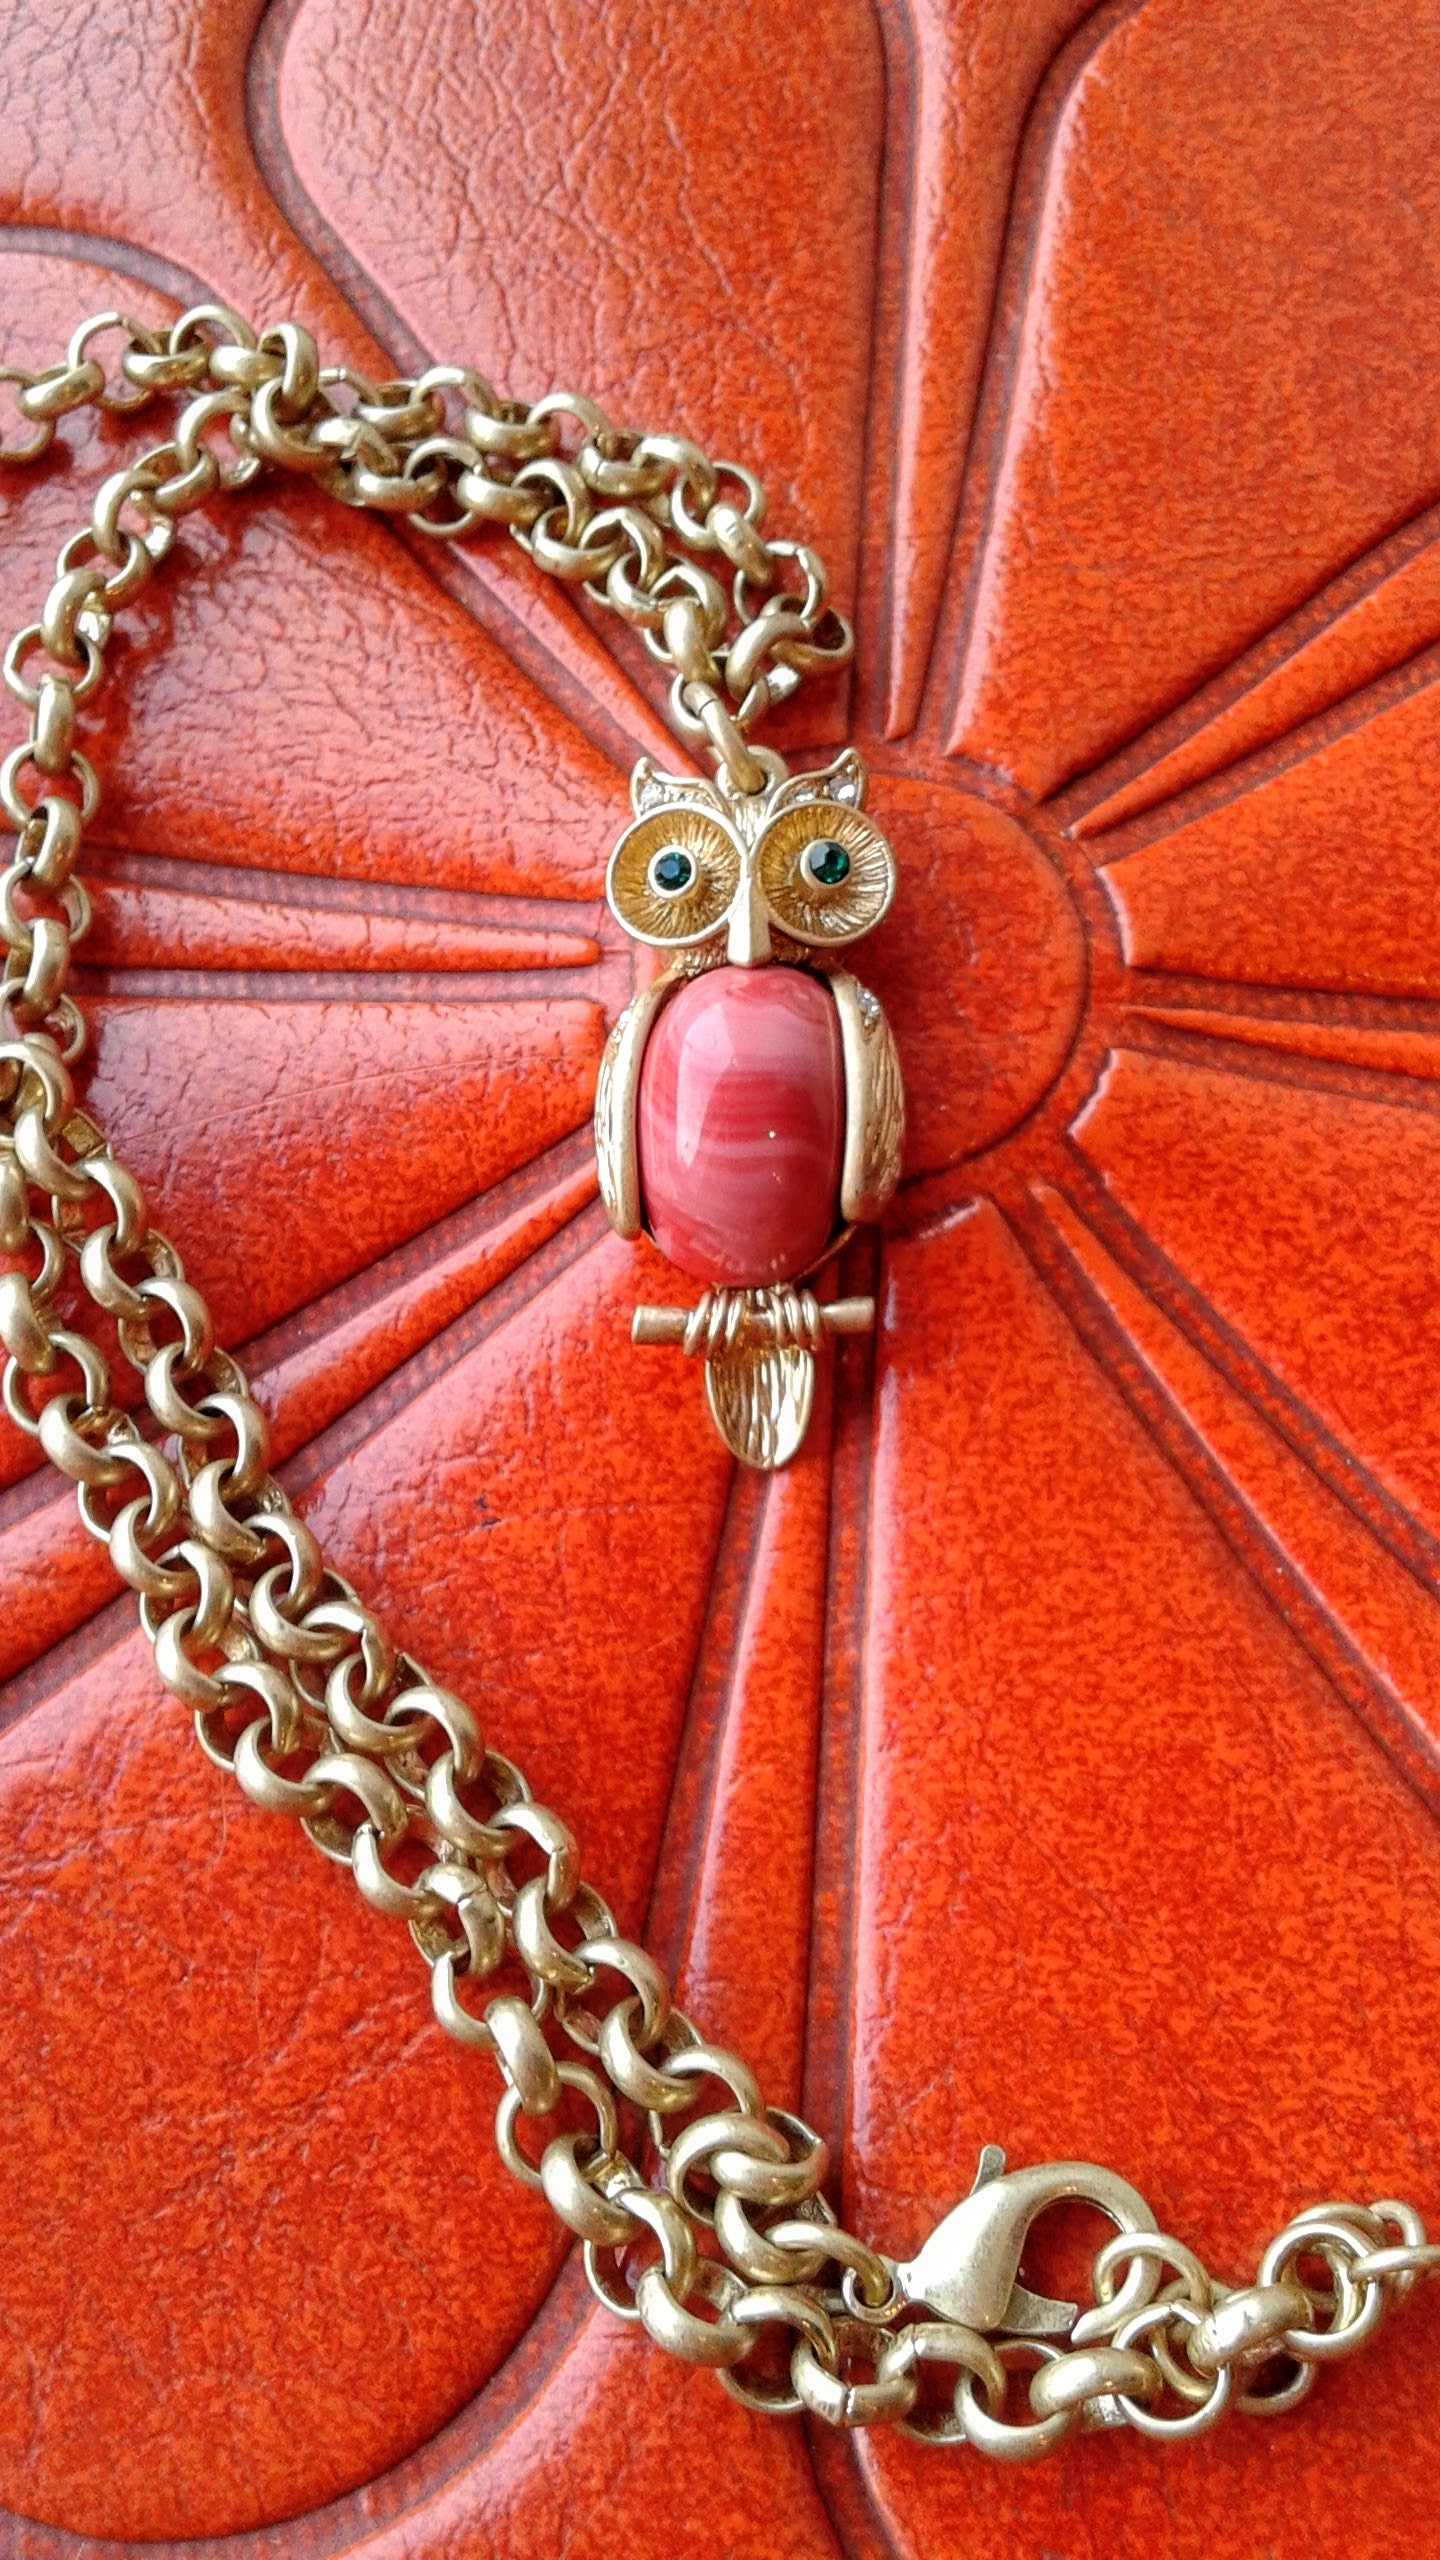 Owl necklace, $24